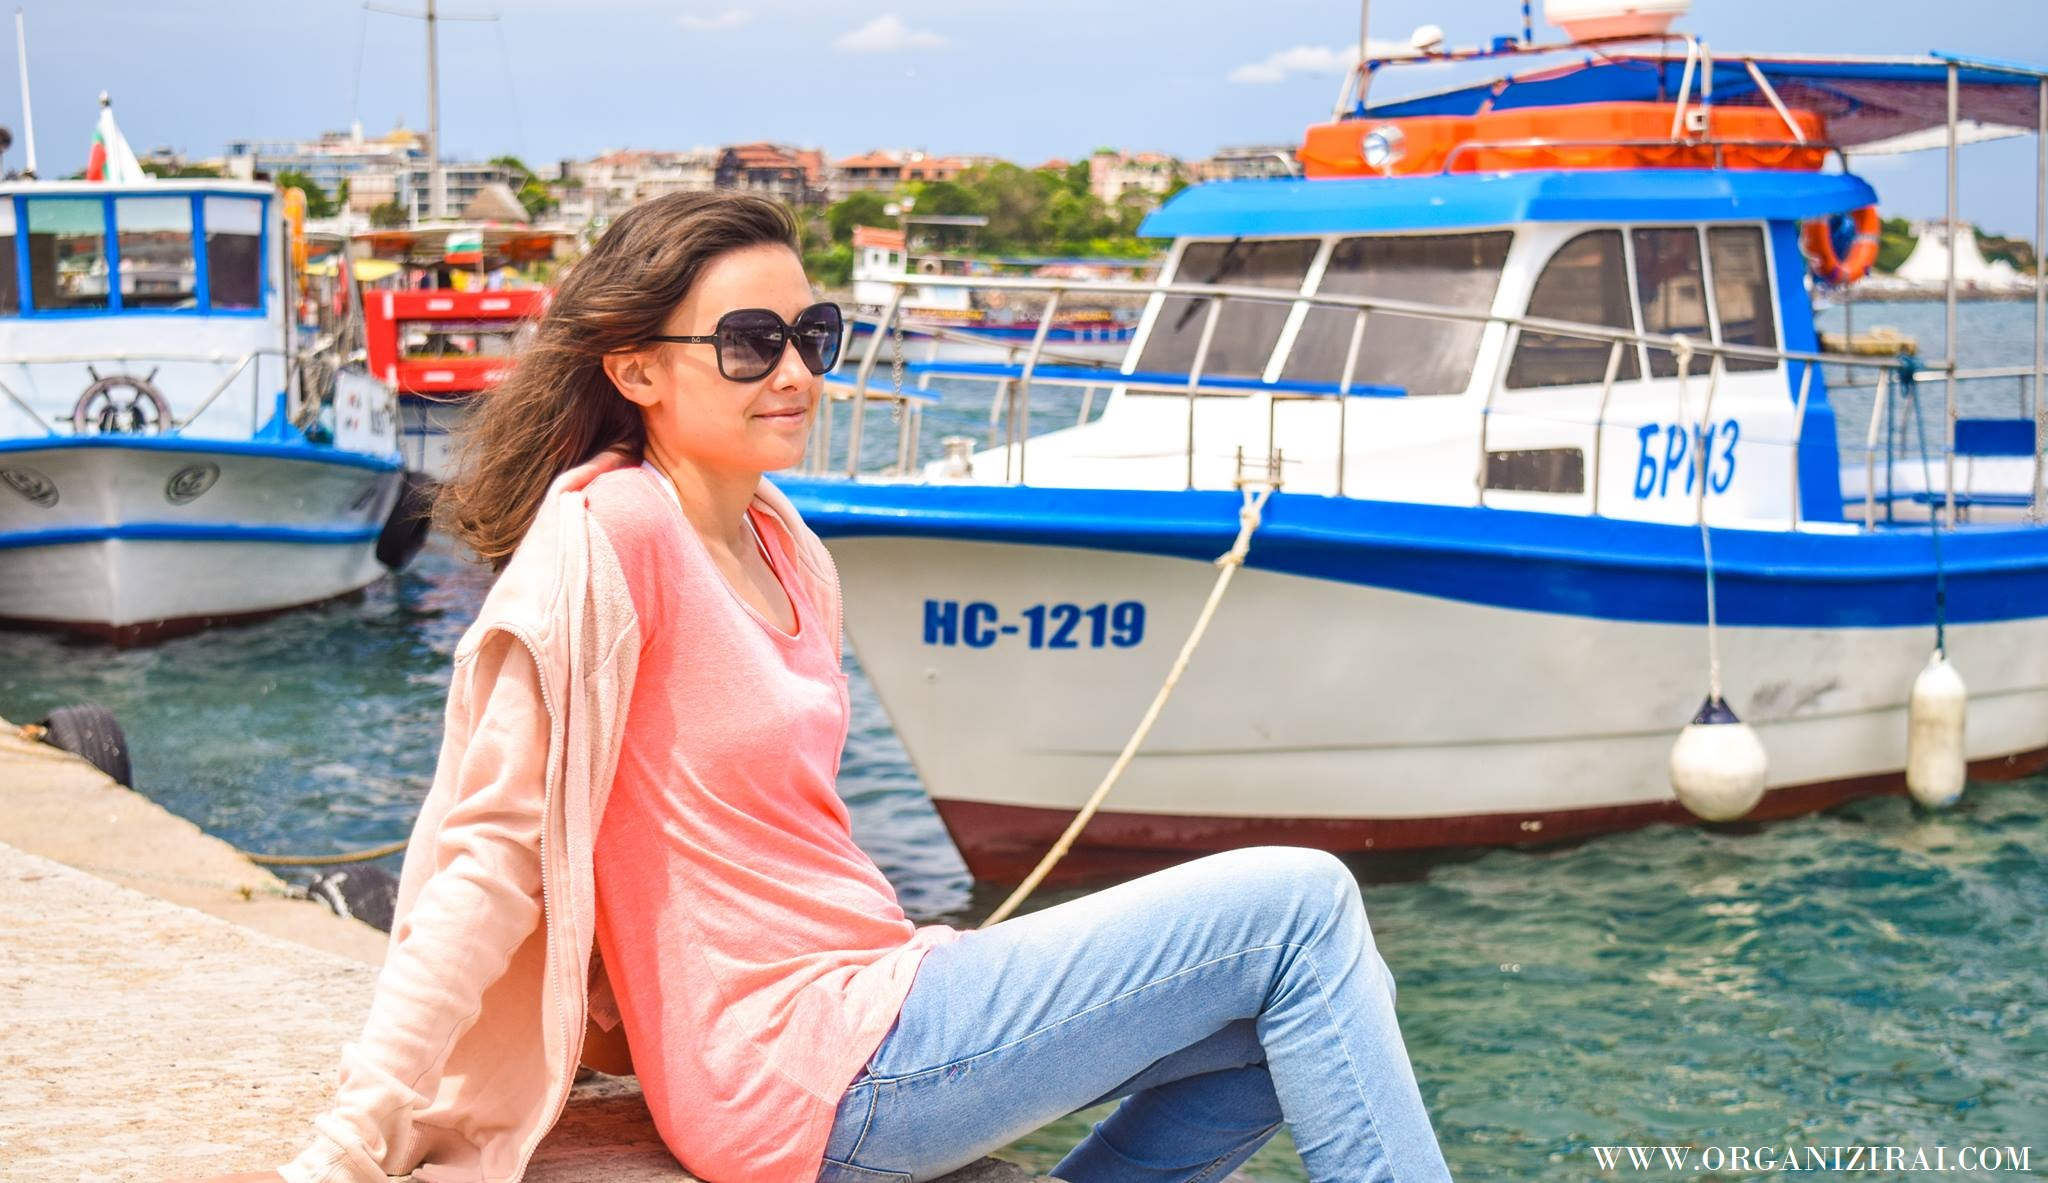 BOAT_SEA-VIBES-VIBRATION-SUMMER-PINK-HOODIE-INSPIRATION-BEST-LIFESTYLE-BLOGS-BULGARIAN-BLOGGERS-ORGANIZIRAI.COM15